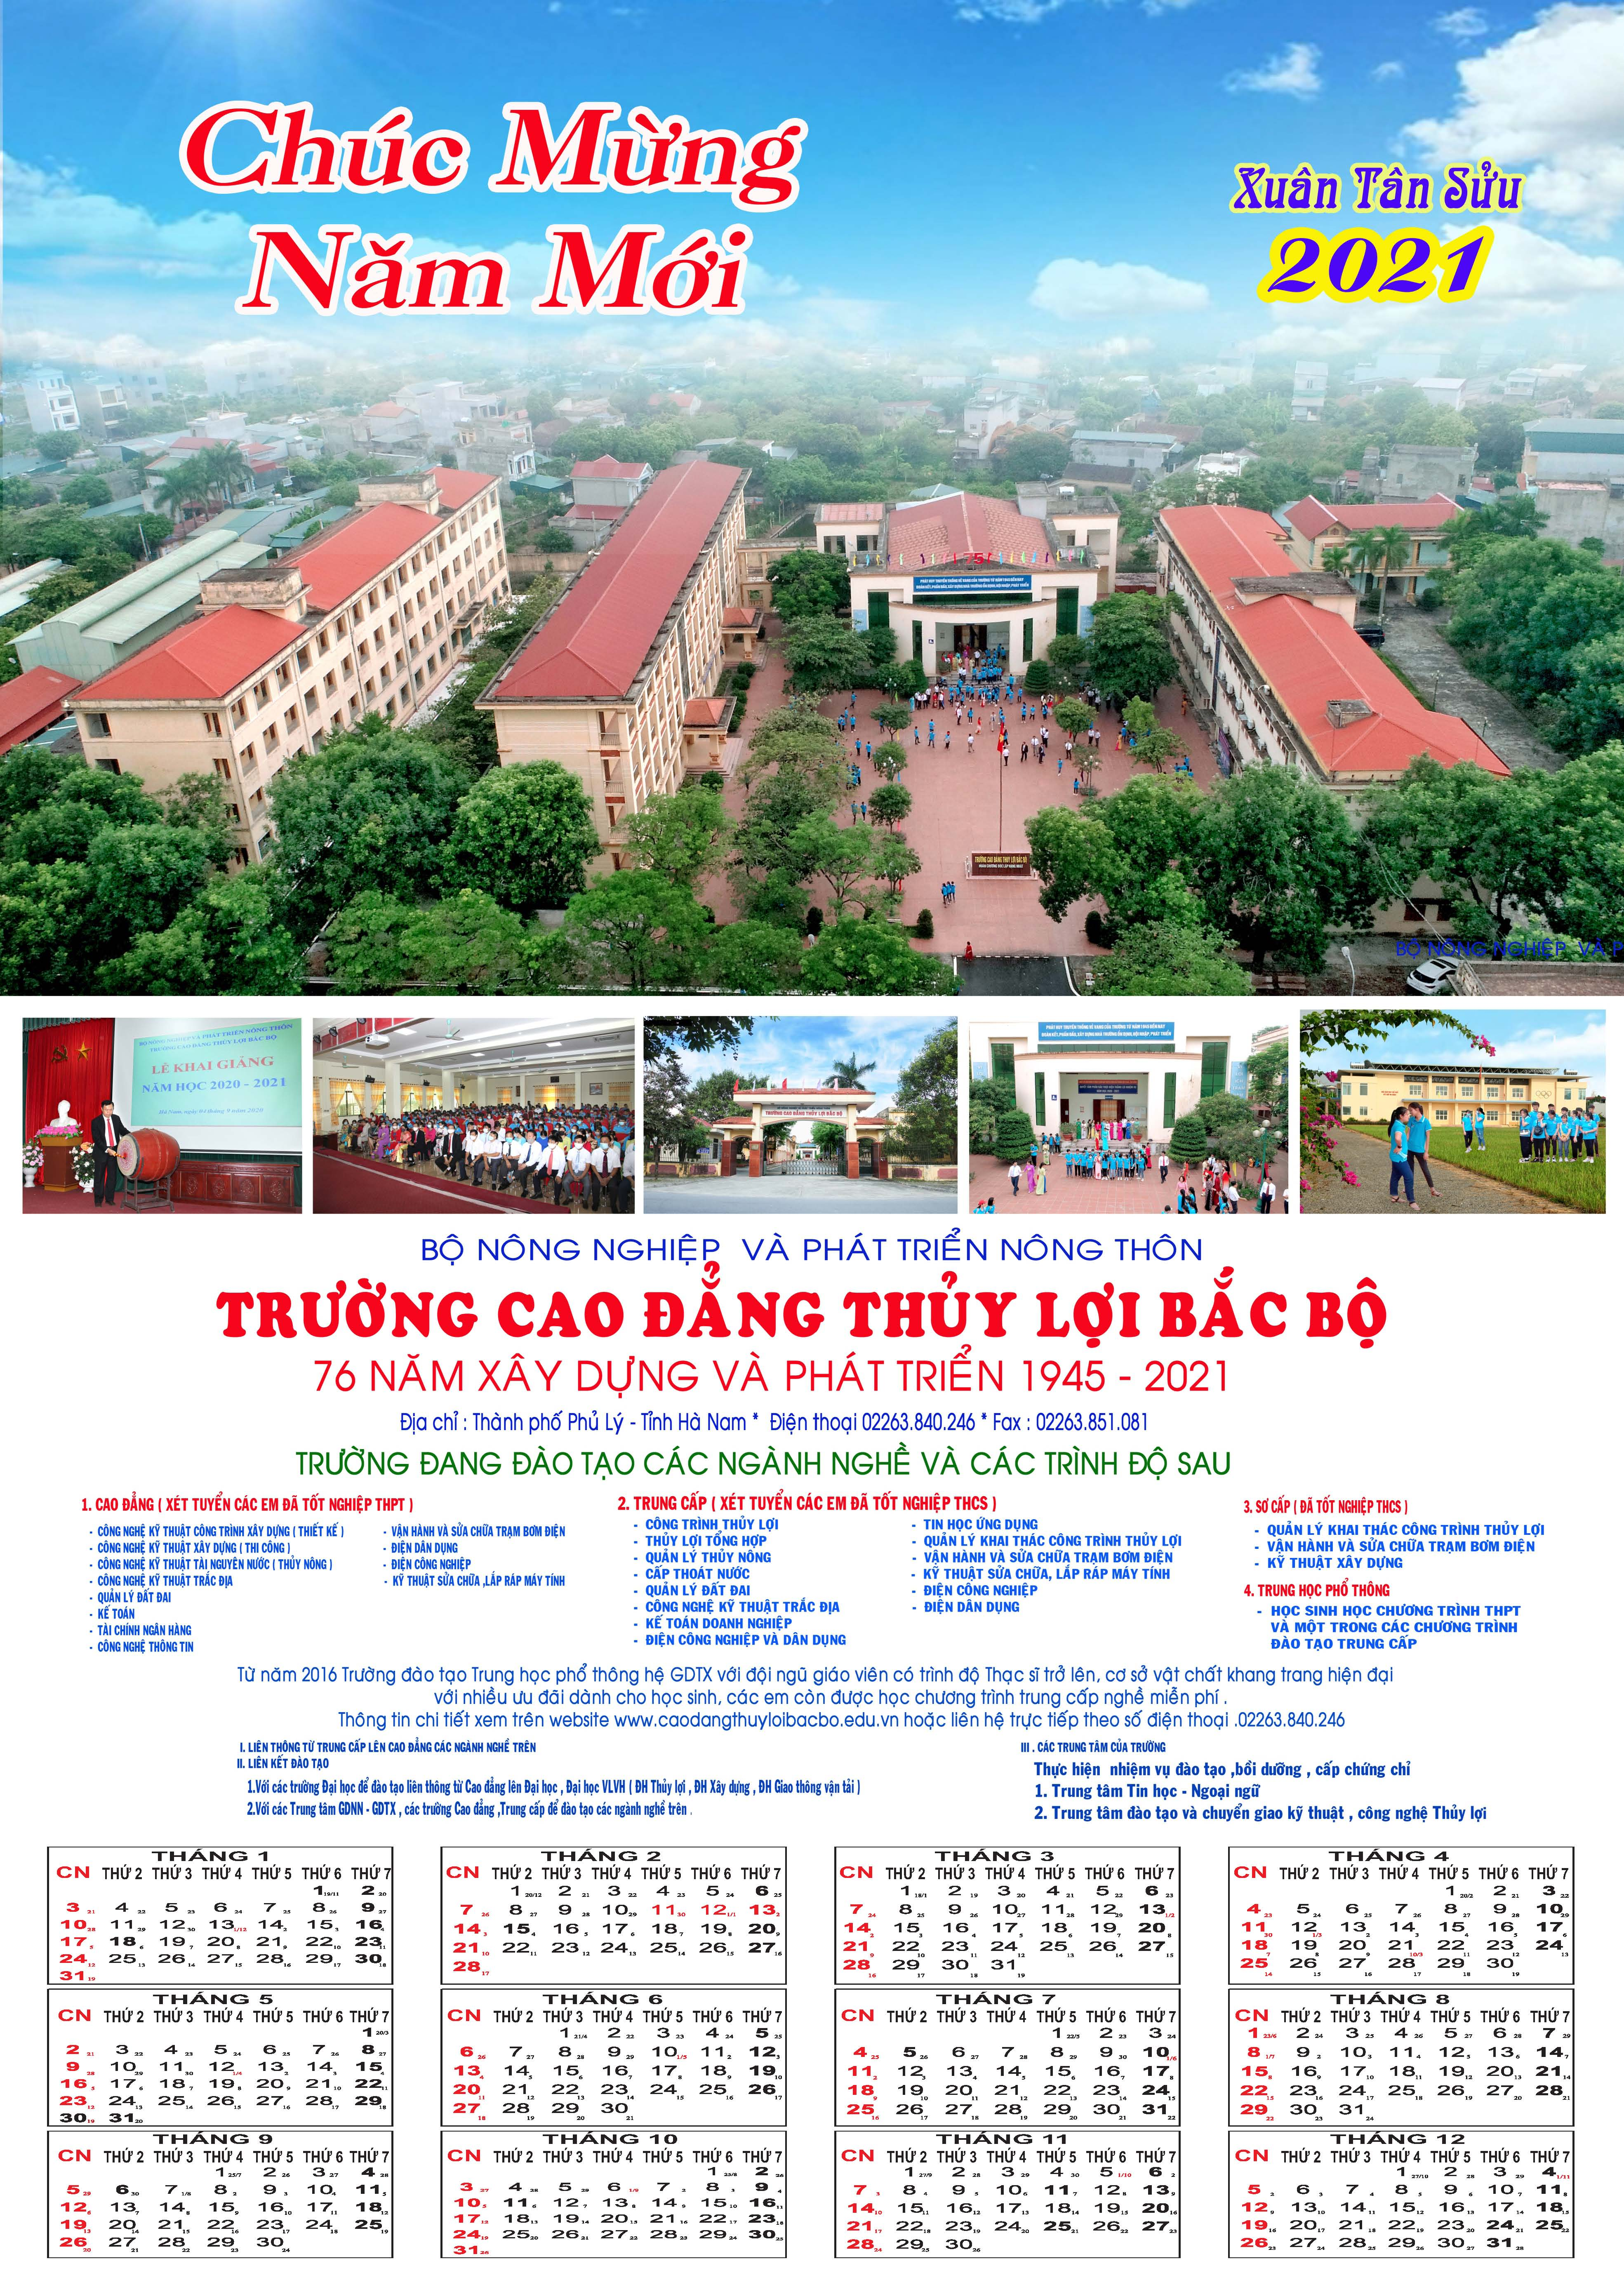 In ấn lịch treo tường